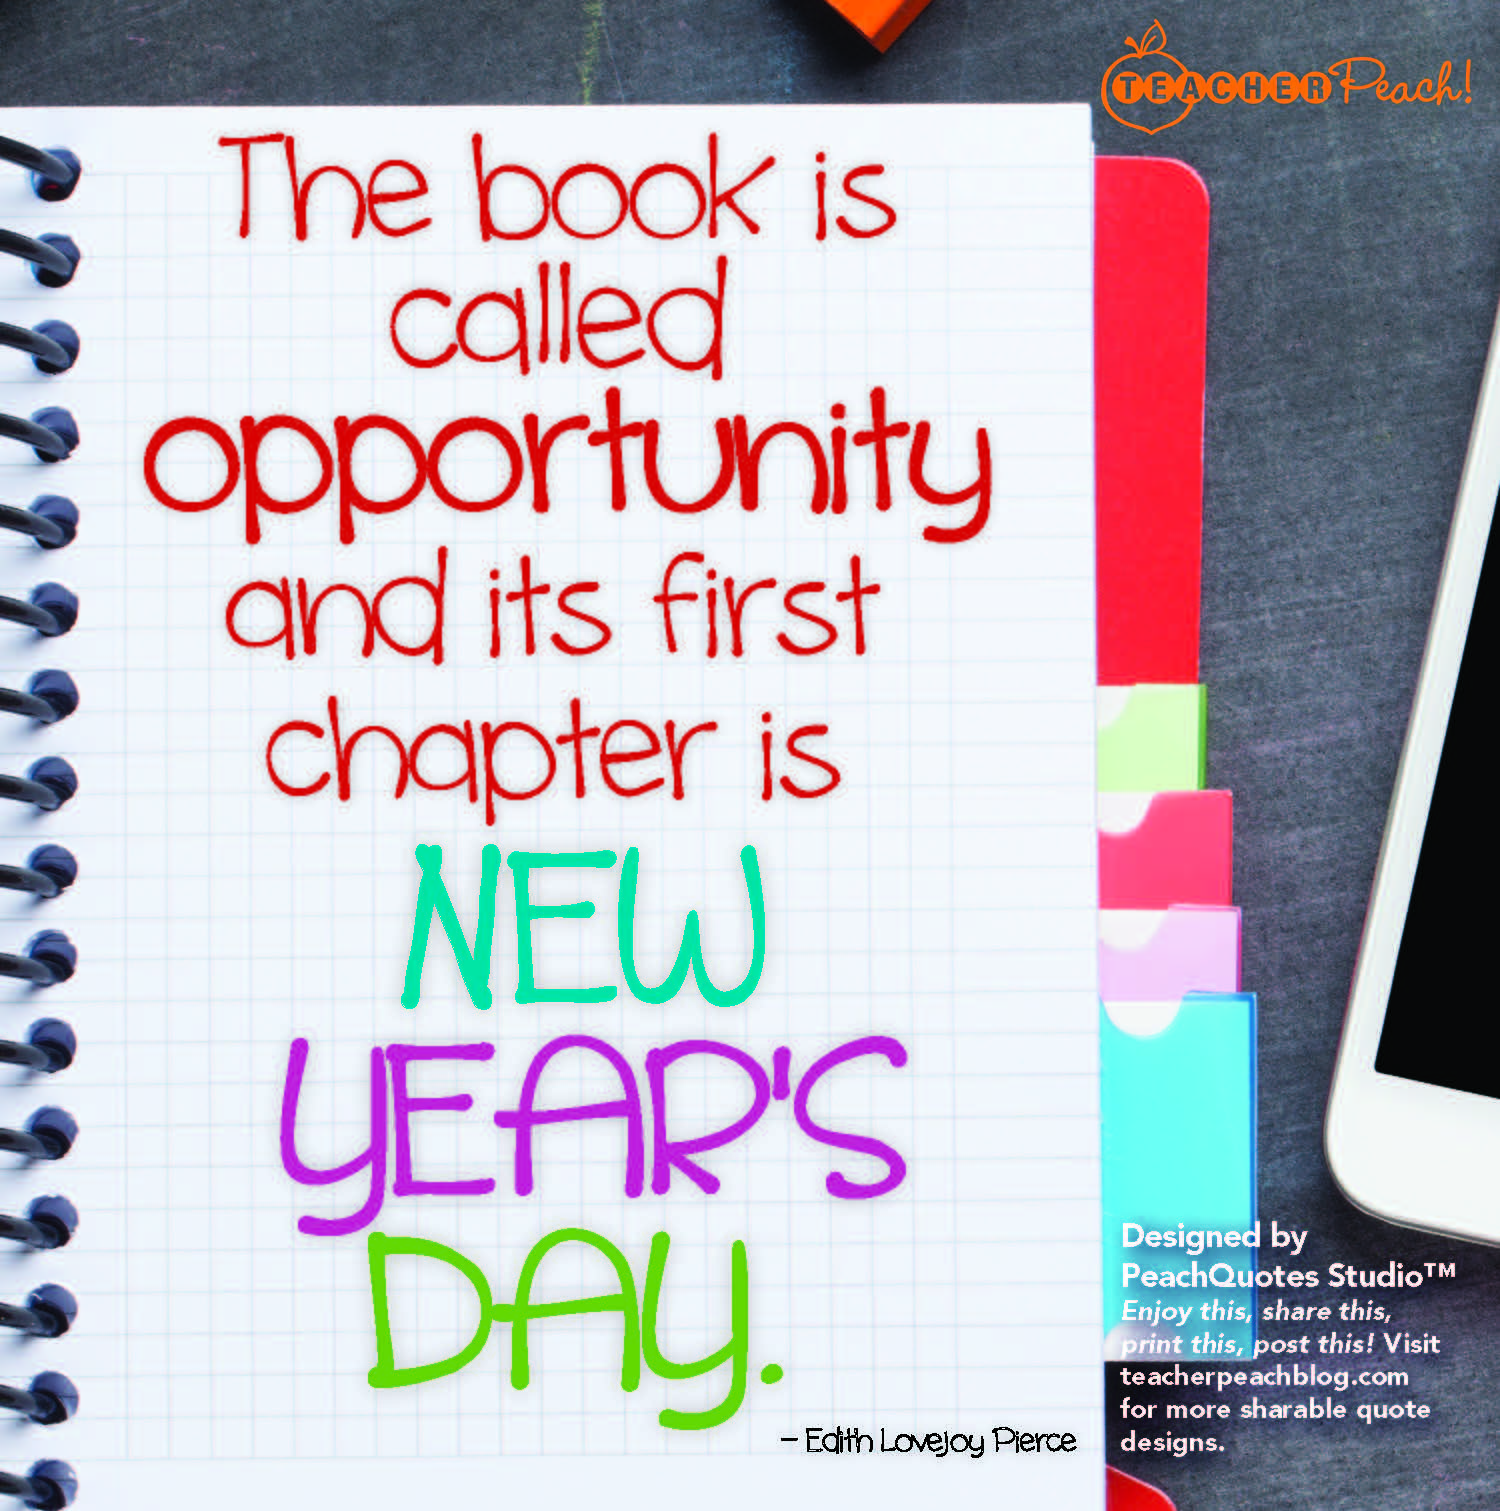 Winter Break W.O.W. Quotation 8! OPPORTUNITY – Reach for the Peach